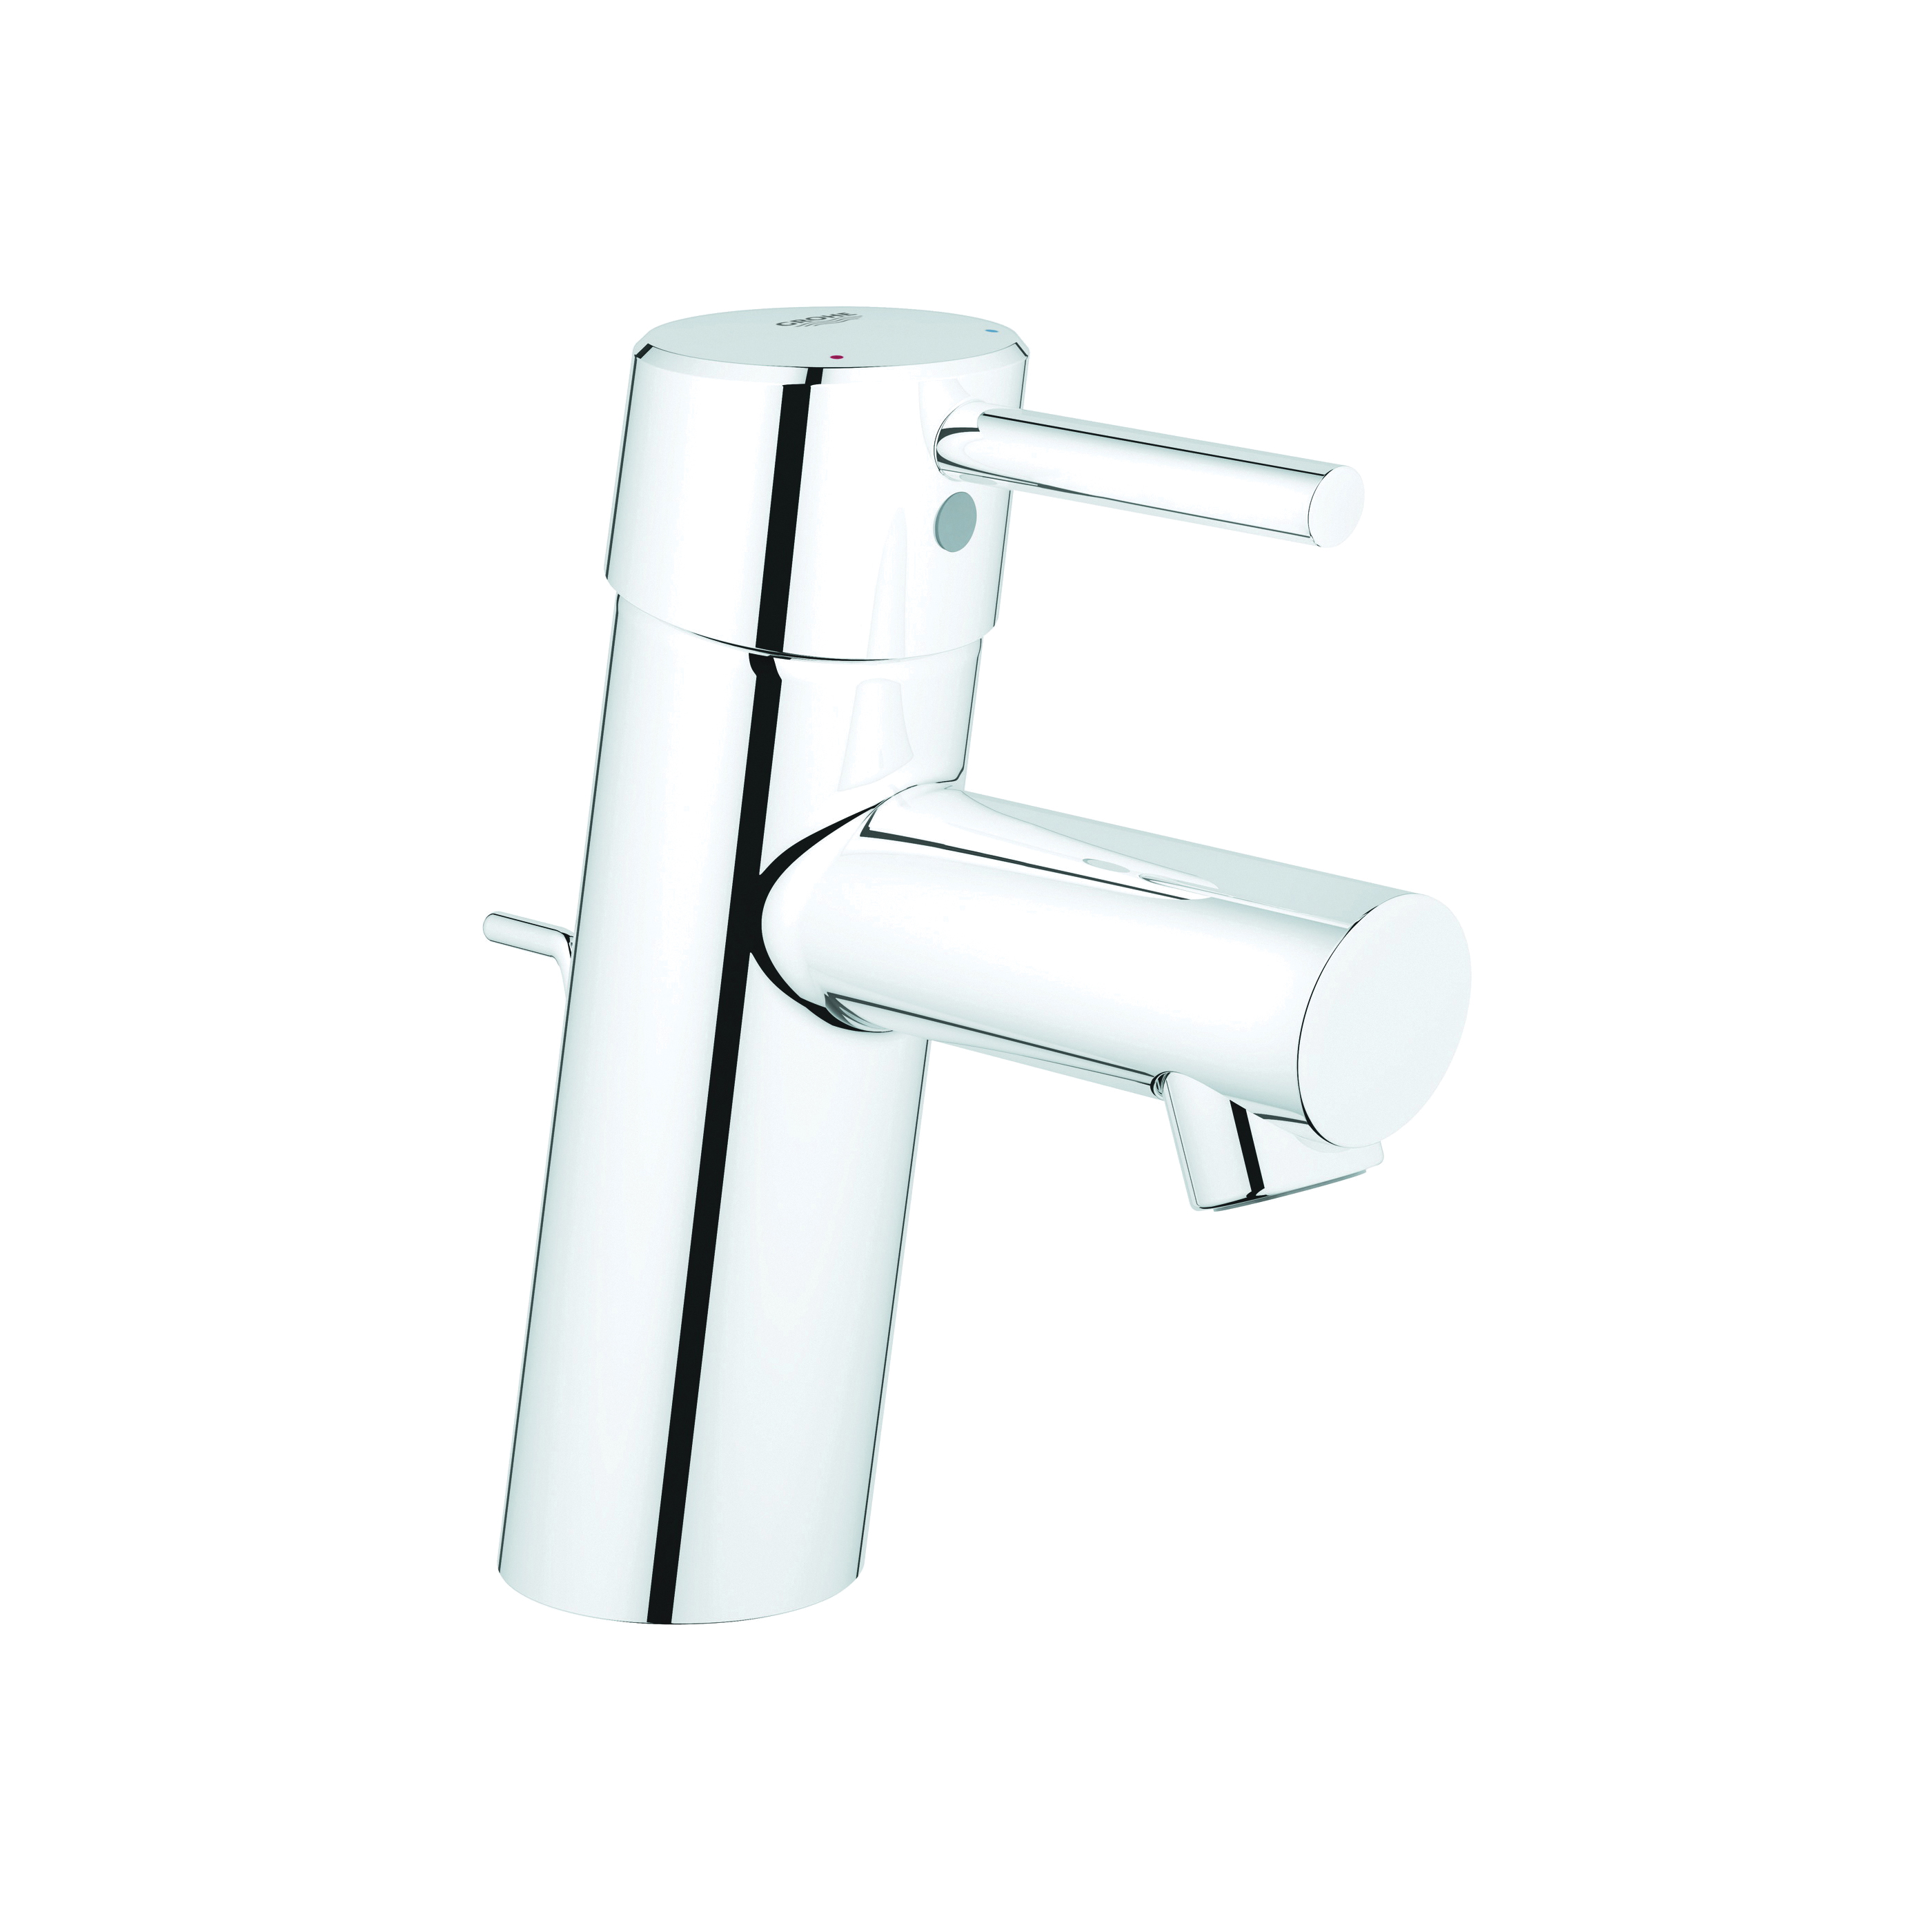 GROHE 3427000A Concetto Small Centerset Lavatory Faucet With Temperature Limiter, C gpm, 2-9/16 in H Spout, 1 Handle, Pop-Up Drain, 1 Faucet Hole, StarLight® Chrome, Import